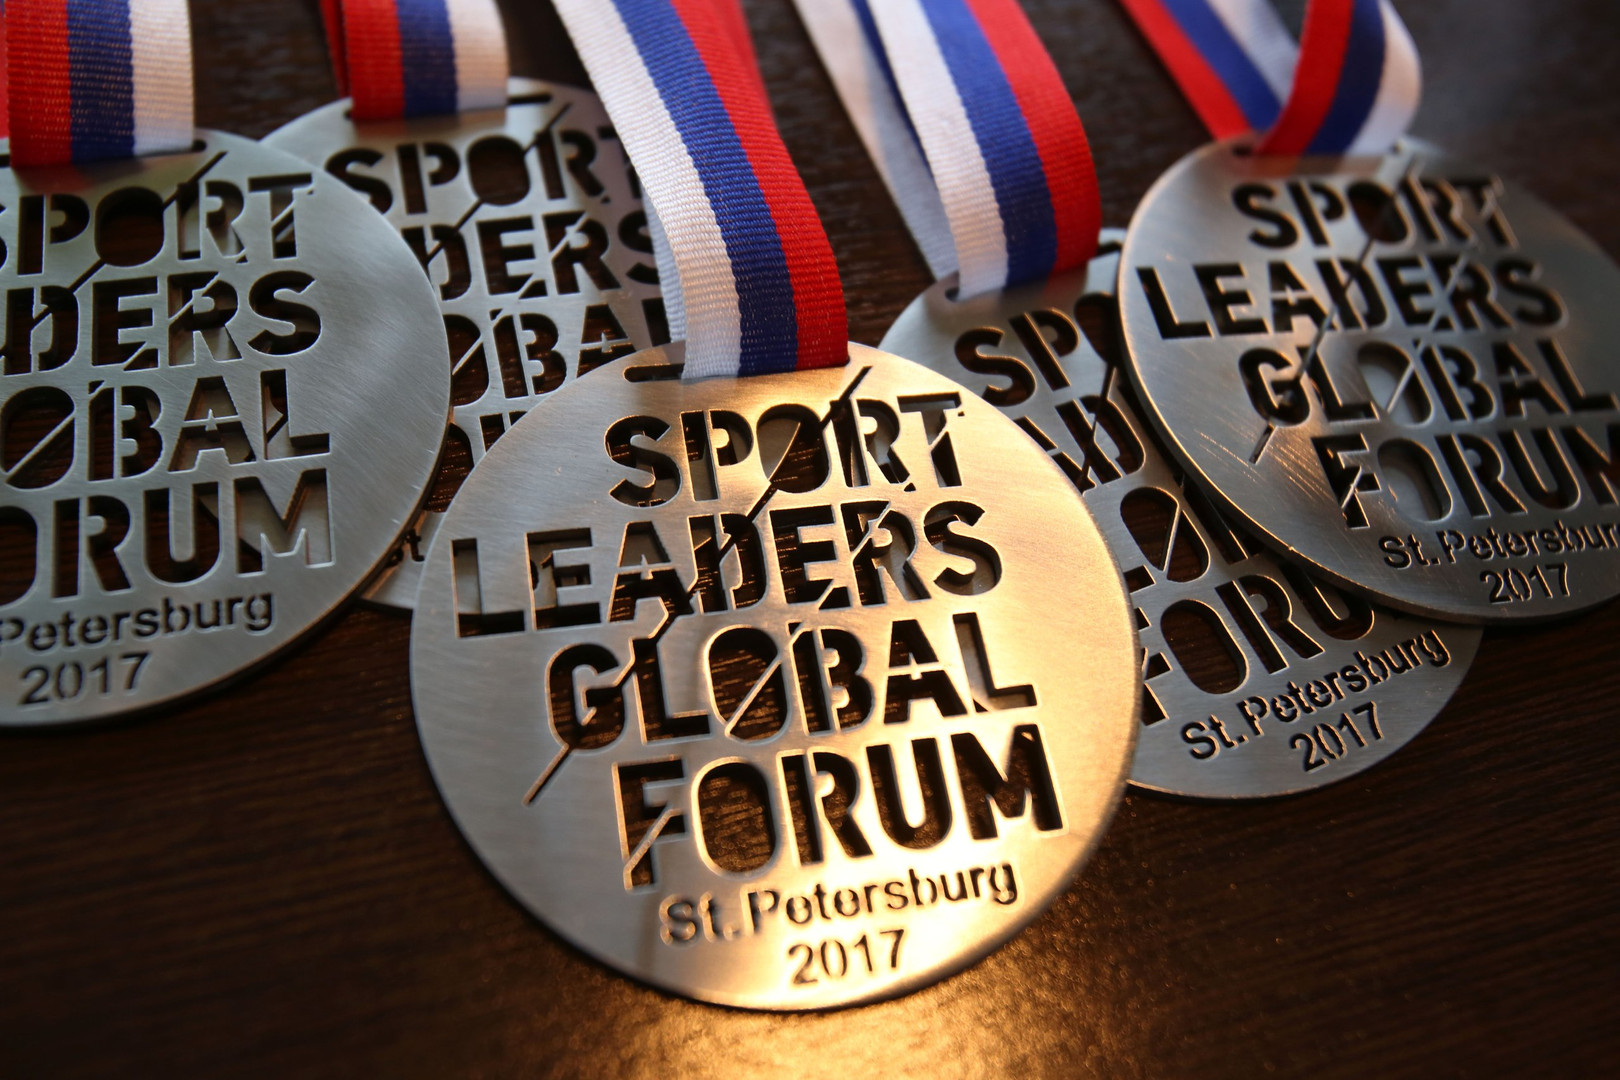 Sport Leaders Global Forum